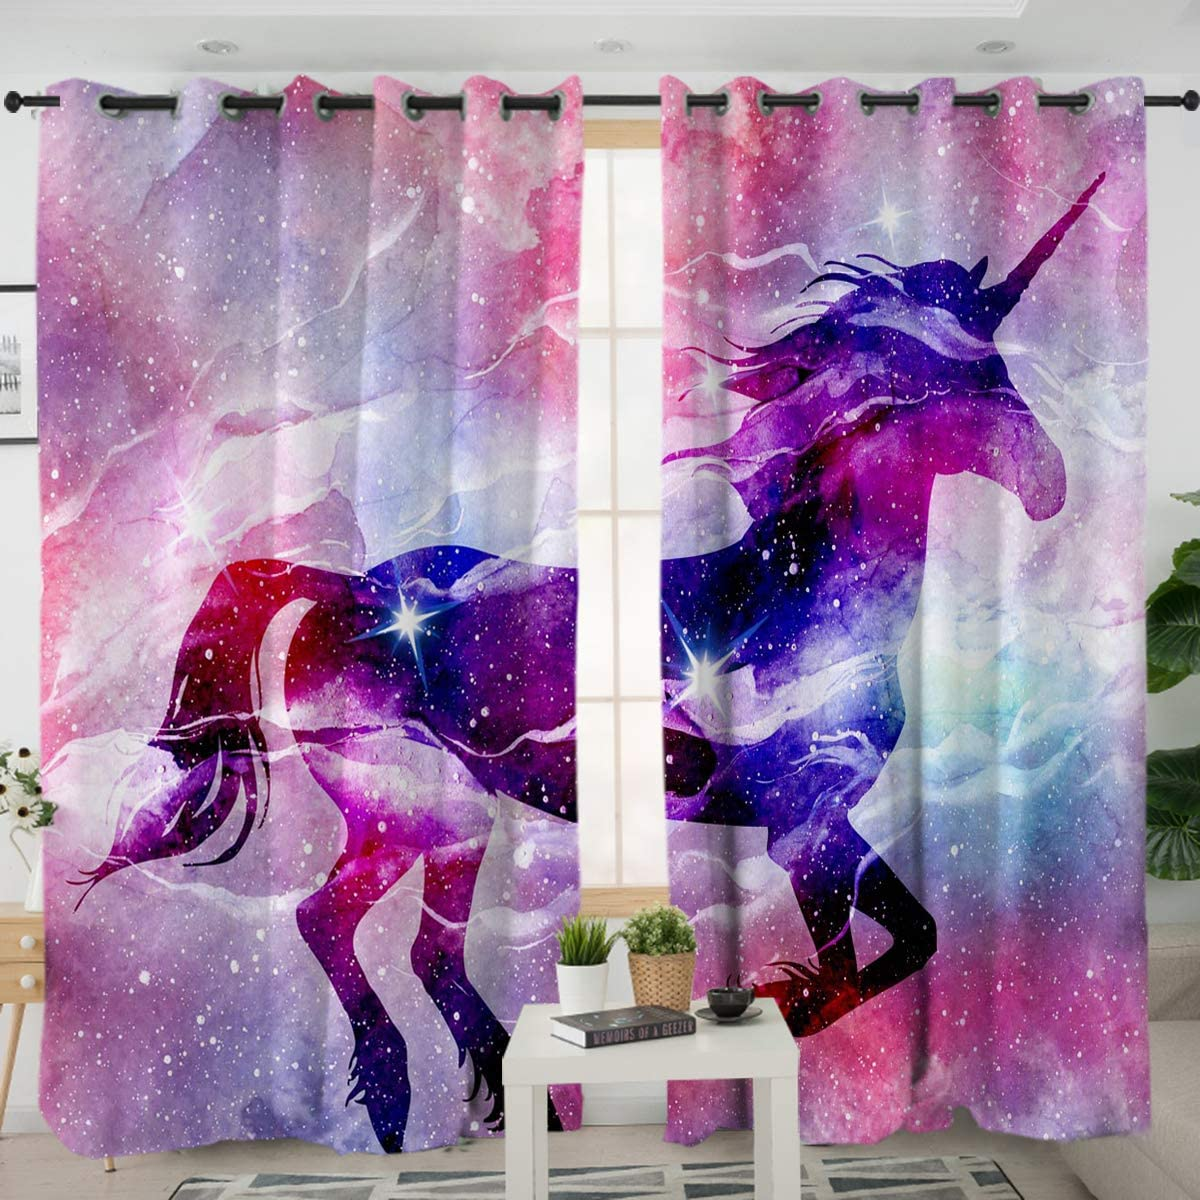 Sleepwish Unicorn Curtains Pink Lavender Blue White Galaxy Unicorn Curtain Panels Purple Space Living Room Decor 2 Panels, 52×96 Inch, Hook Top